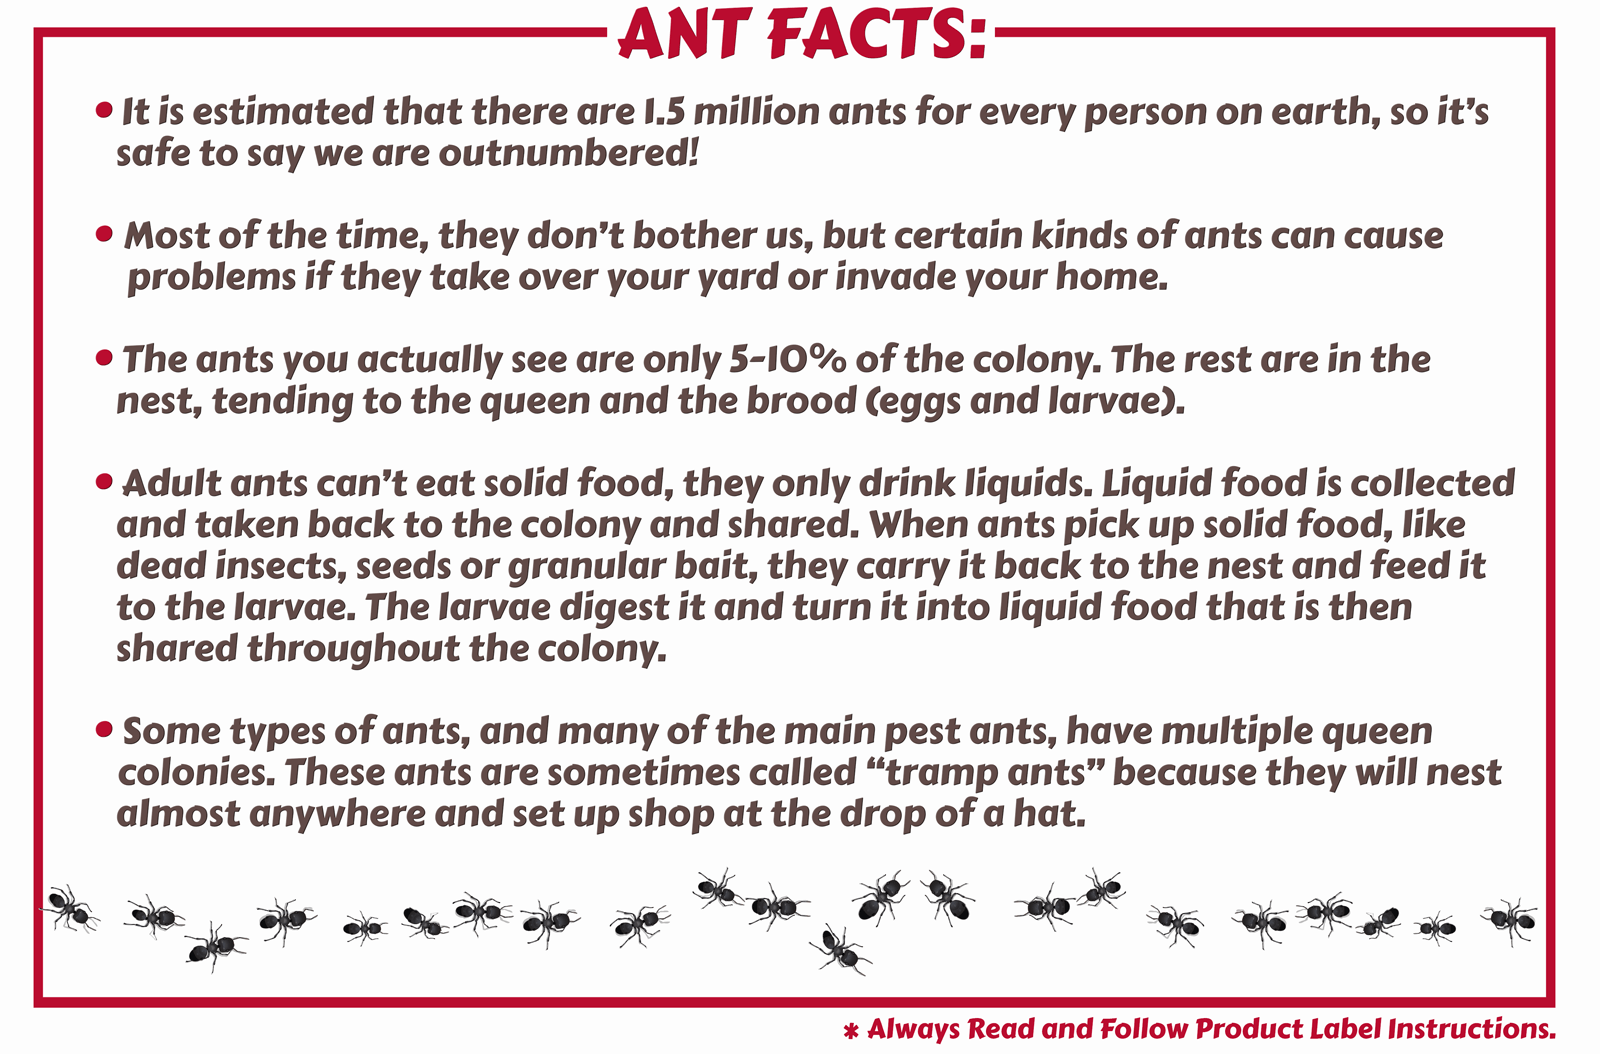 Maggie's Farm Ant Facts